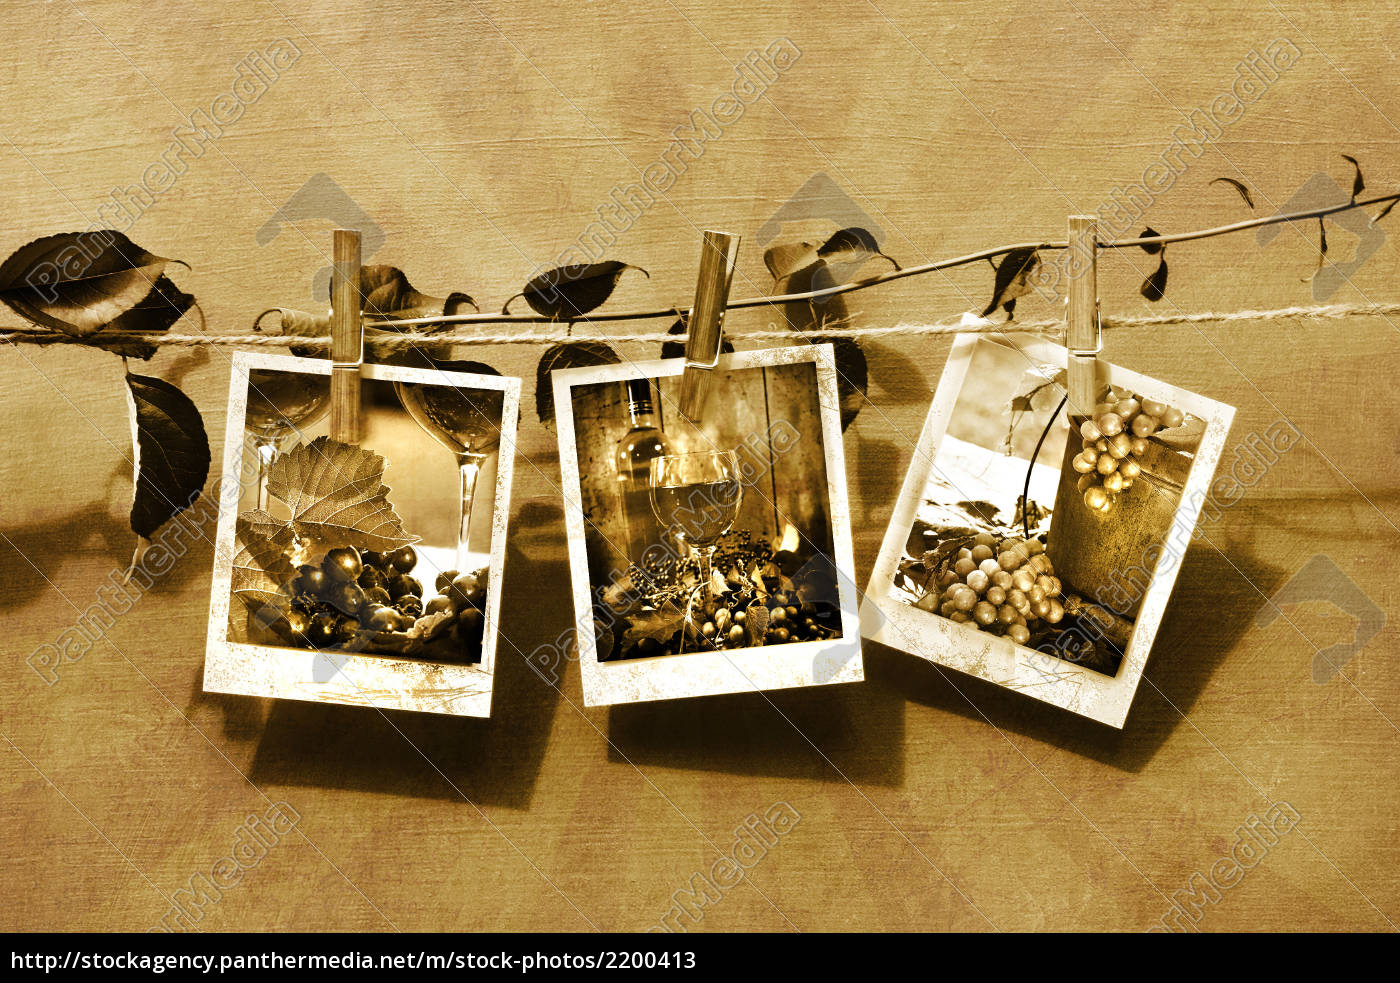 pictures, pinned, on, clothesline/, sepia, tone - 2200413